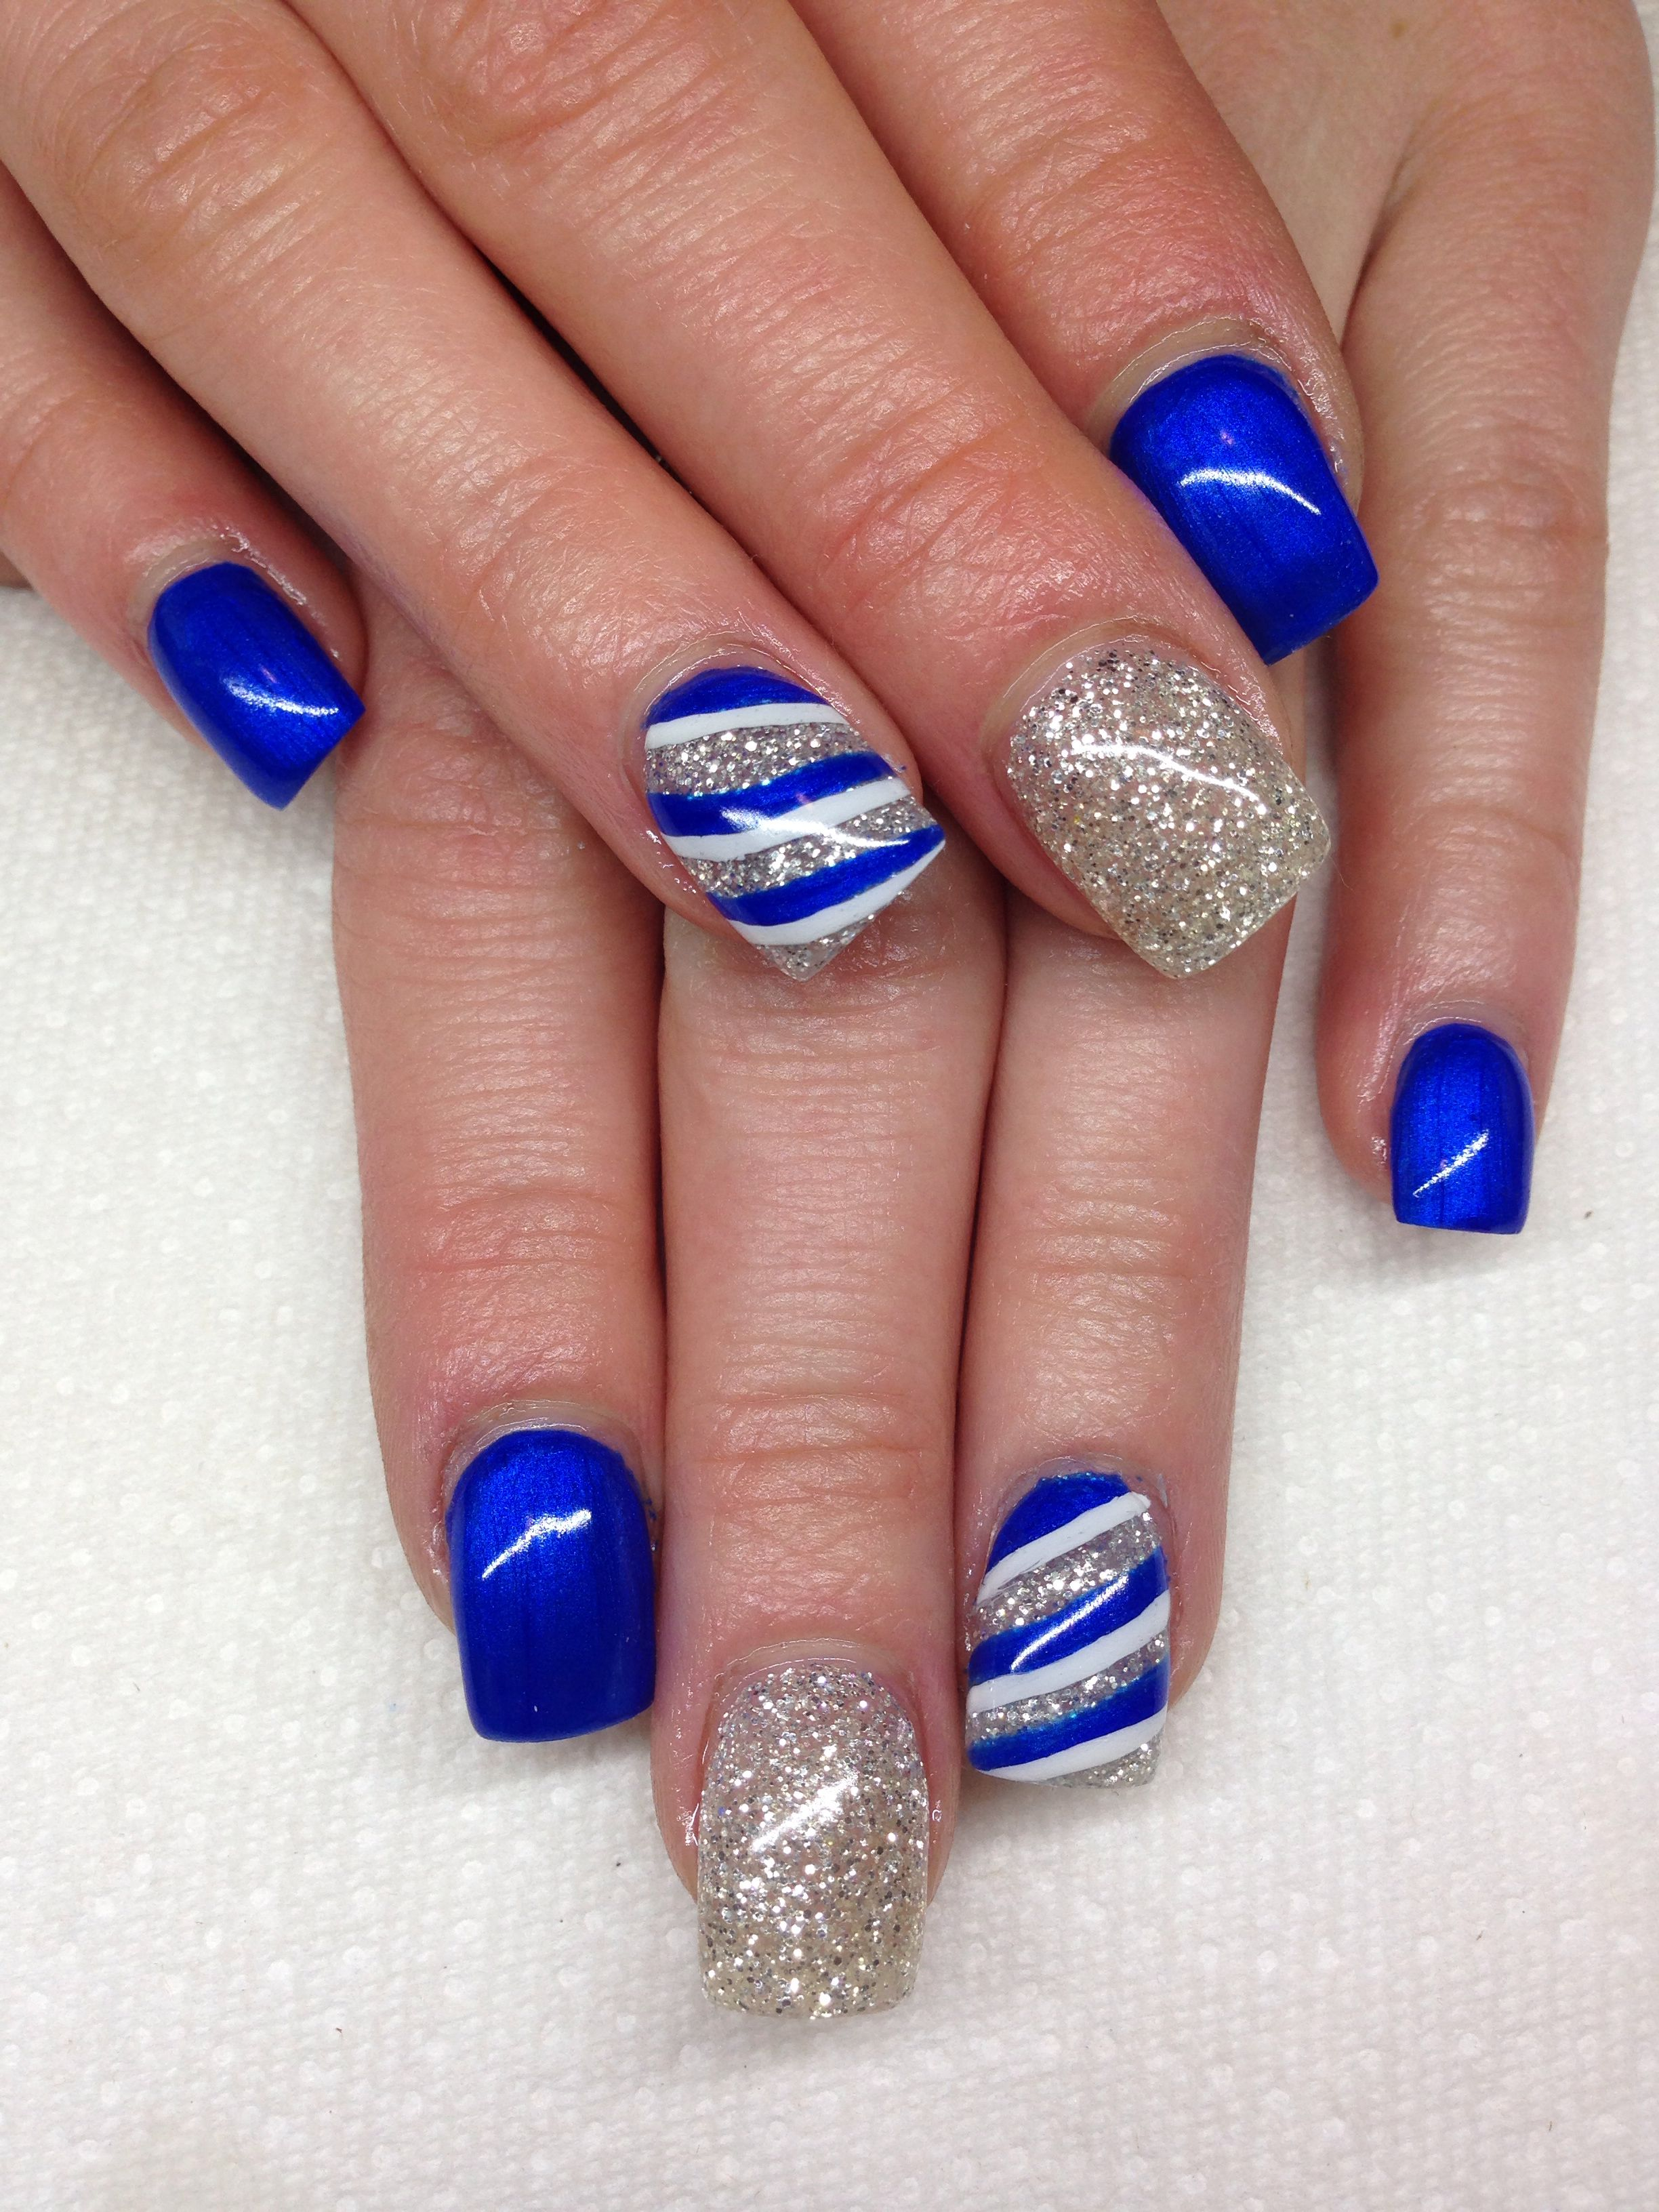 Gel Nails With Hand Drawn Design Using Gel By Melissa Fox Nails